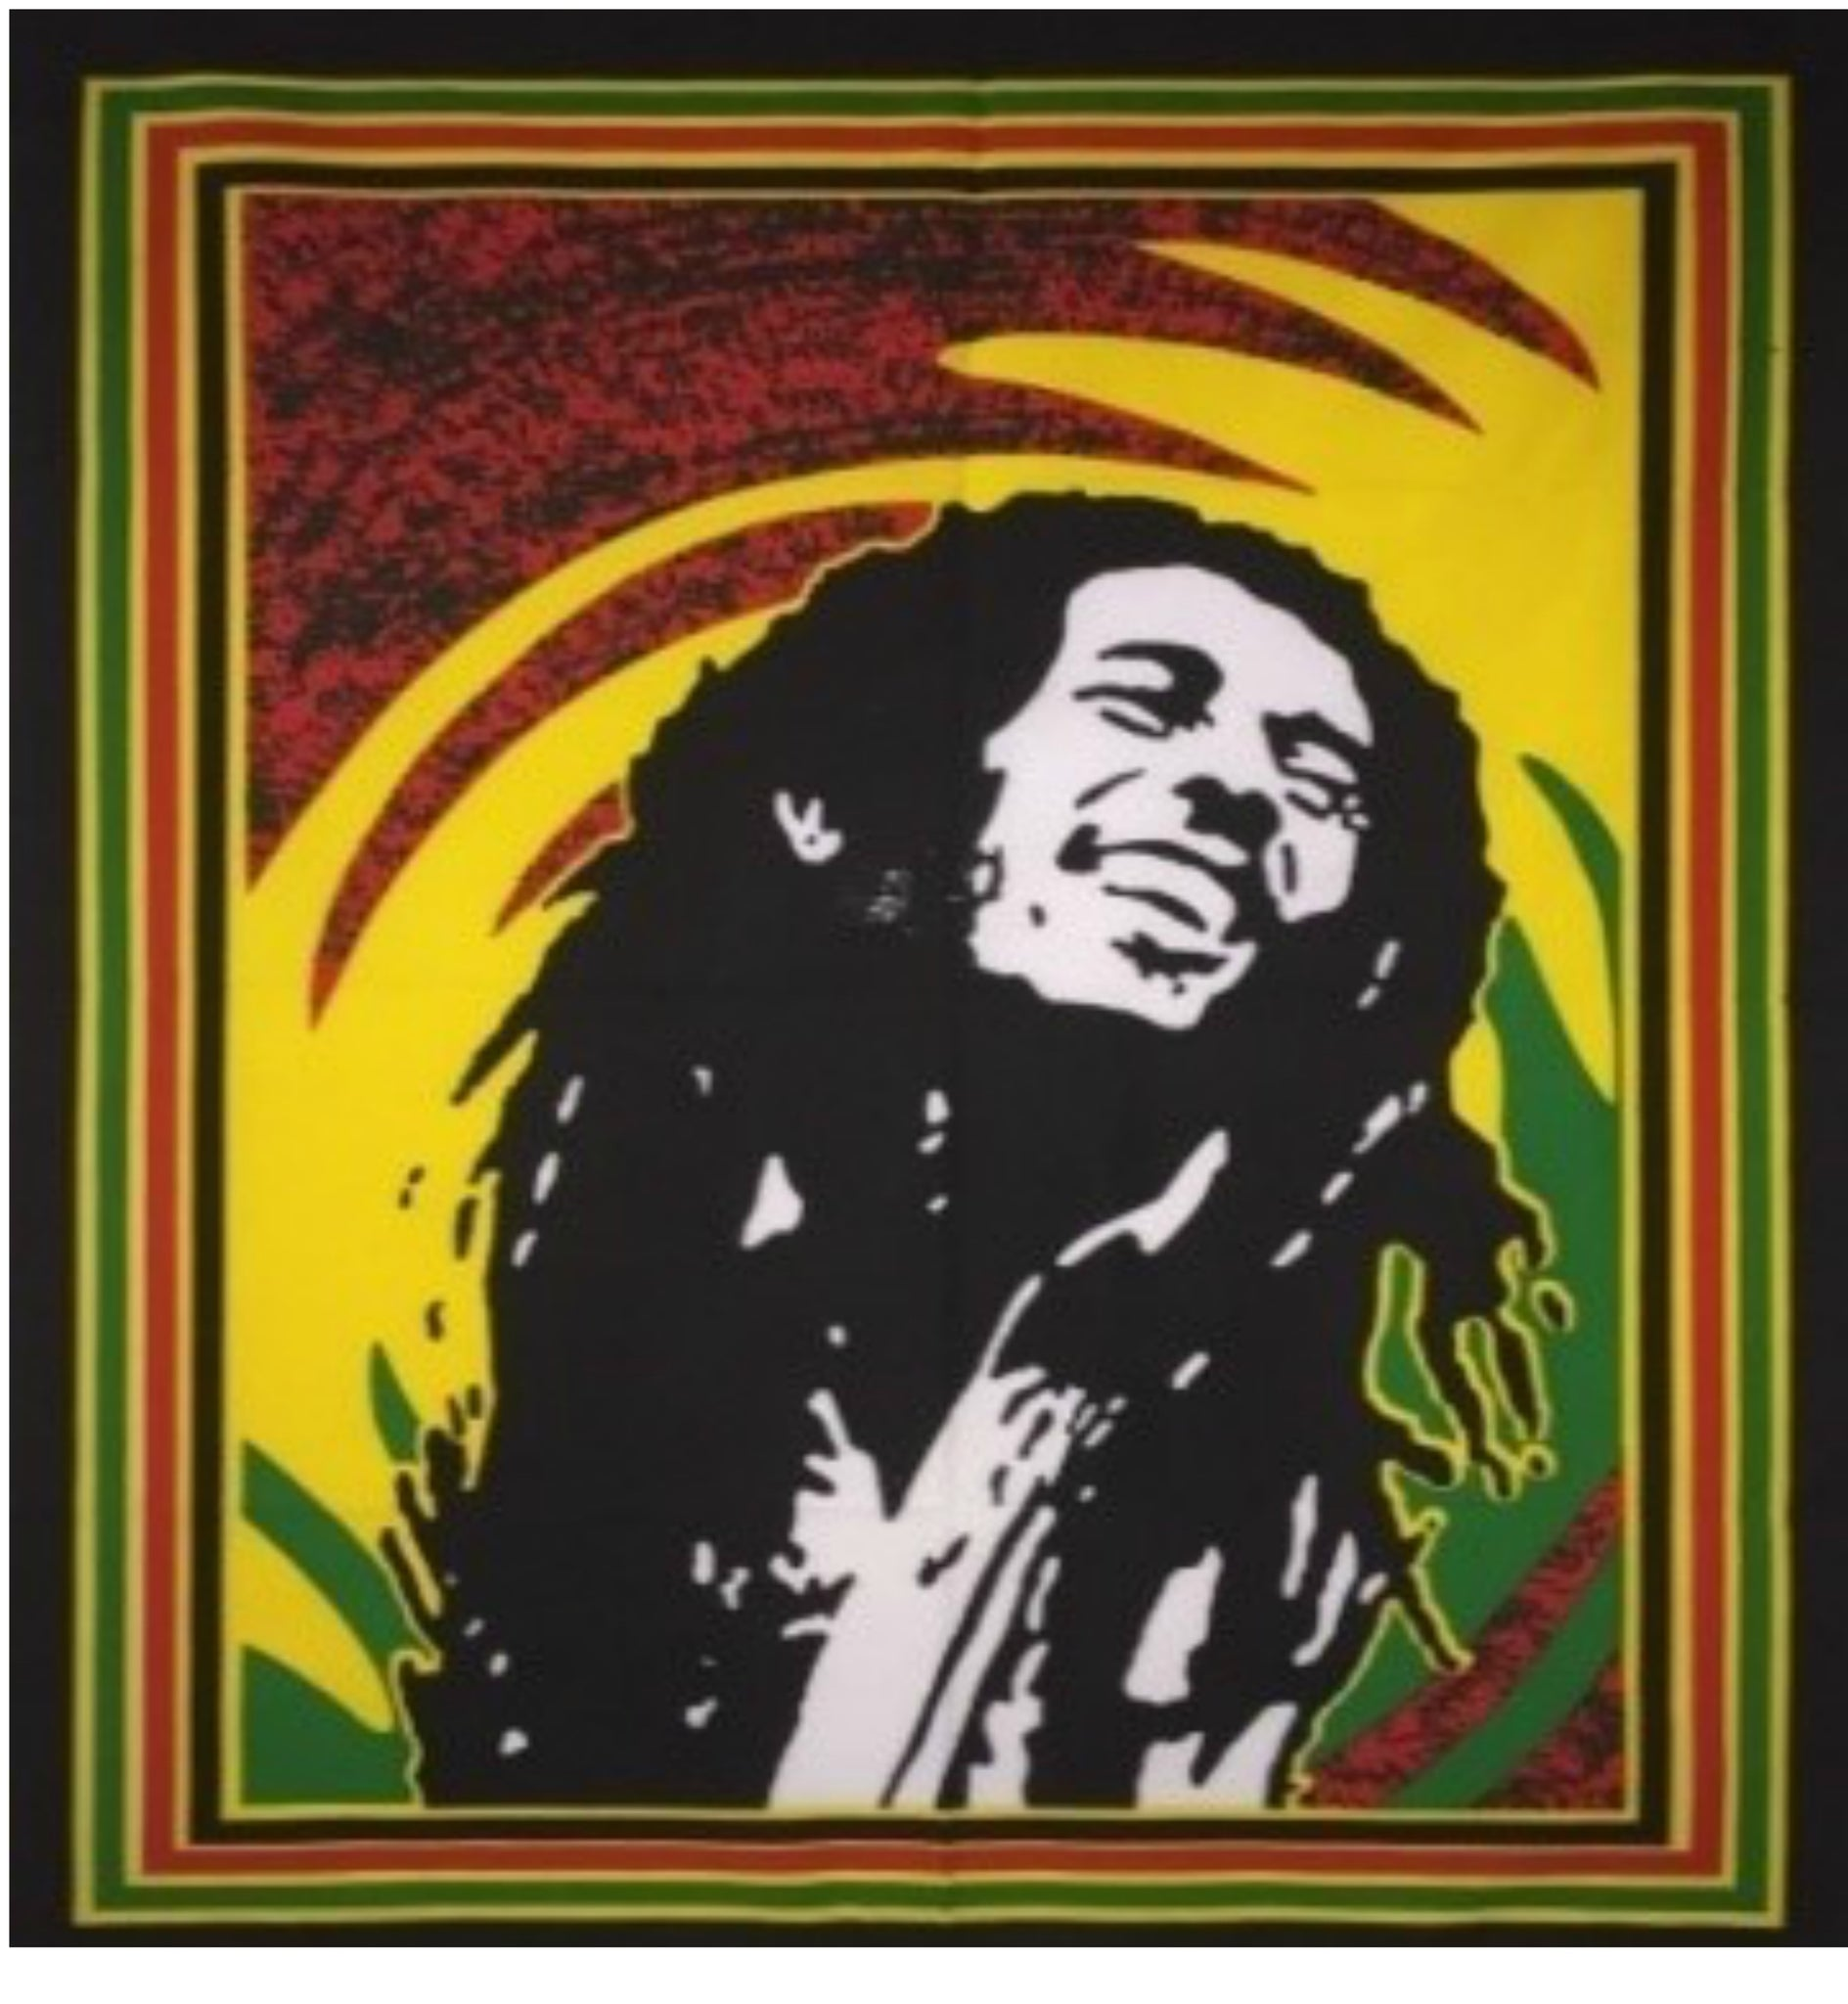 jaan-imports - Bob Marley Hippie Poster Tapestry - Khoobsurat Gift Shop - Poster Tapestry